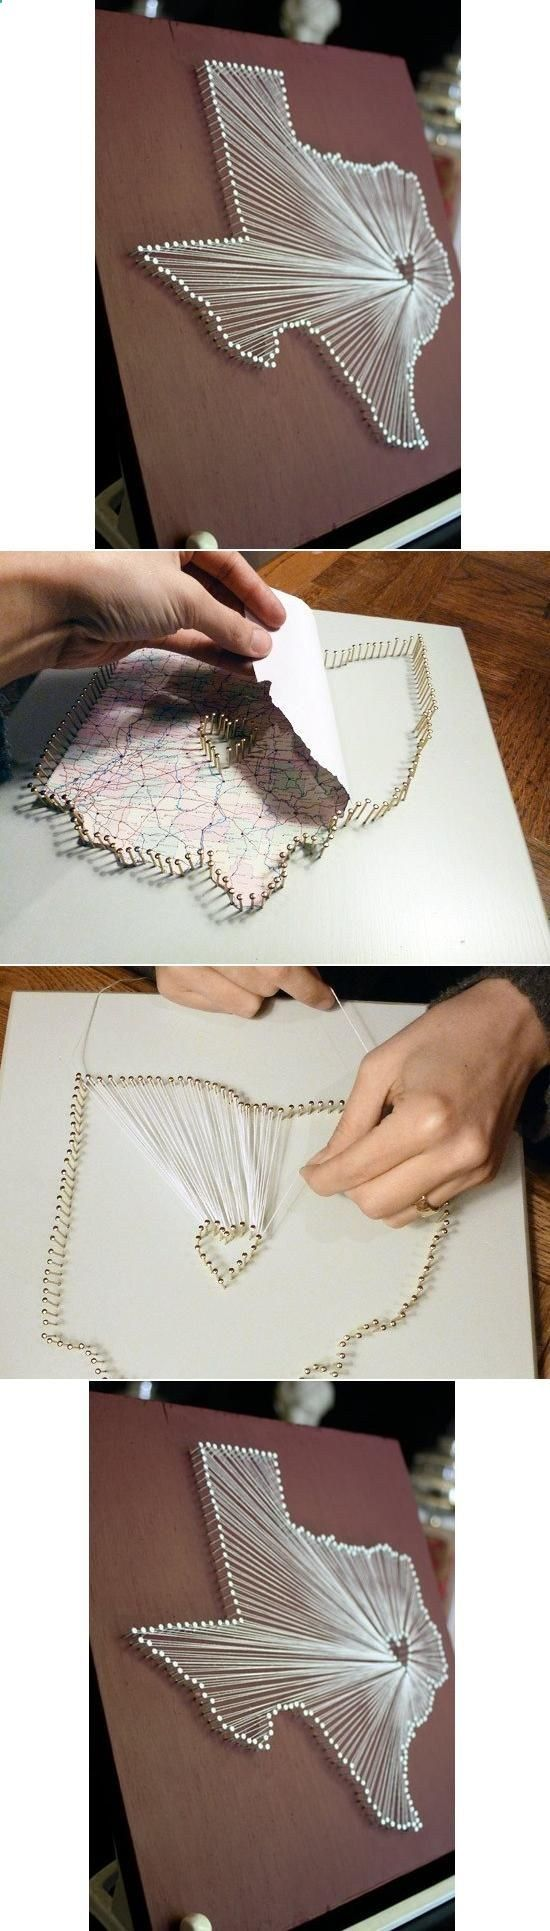 How to make string art!